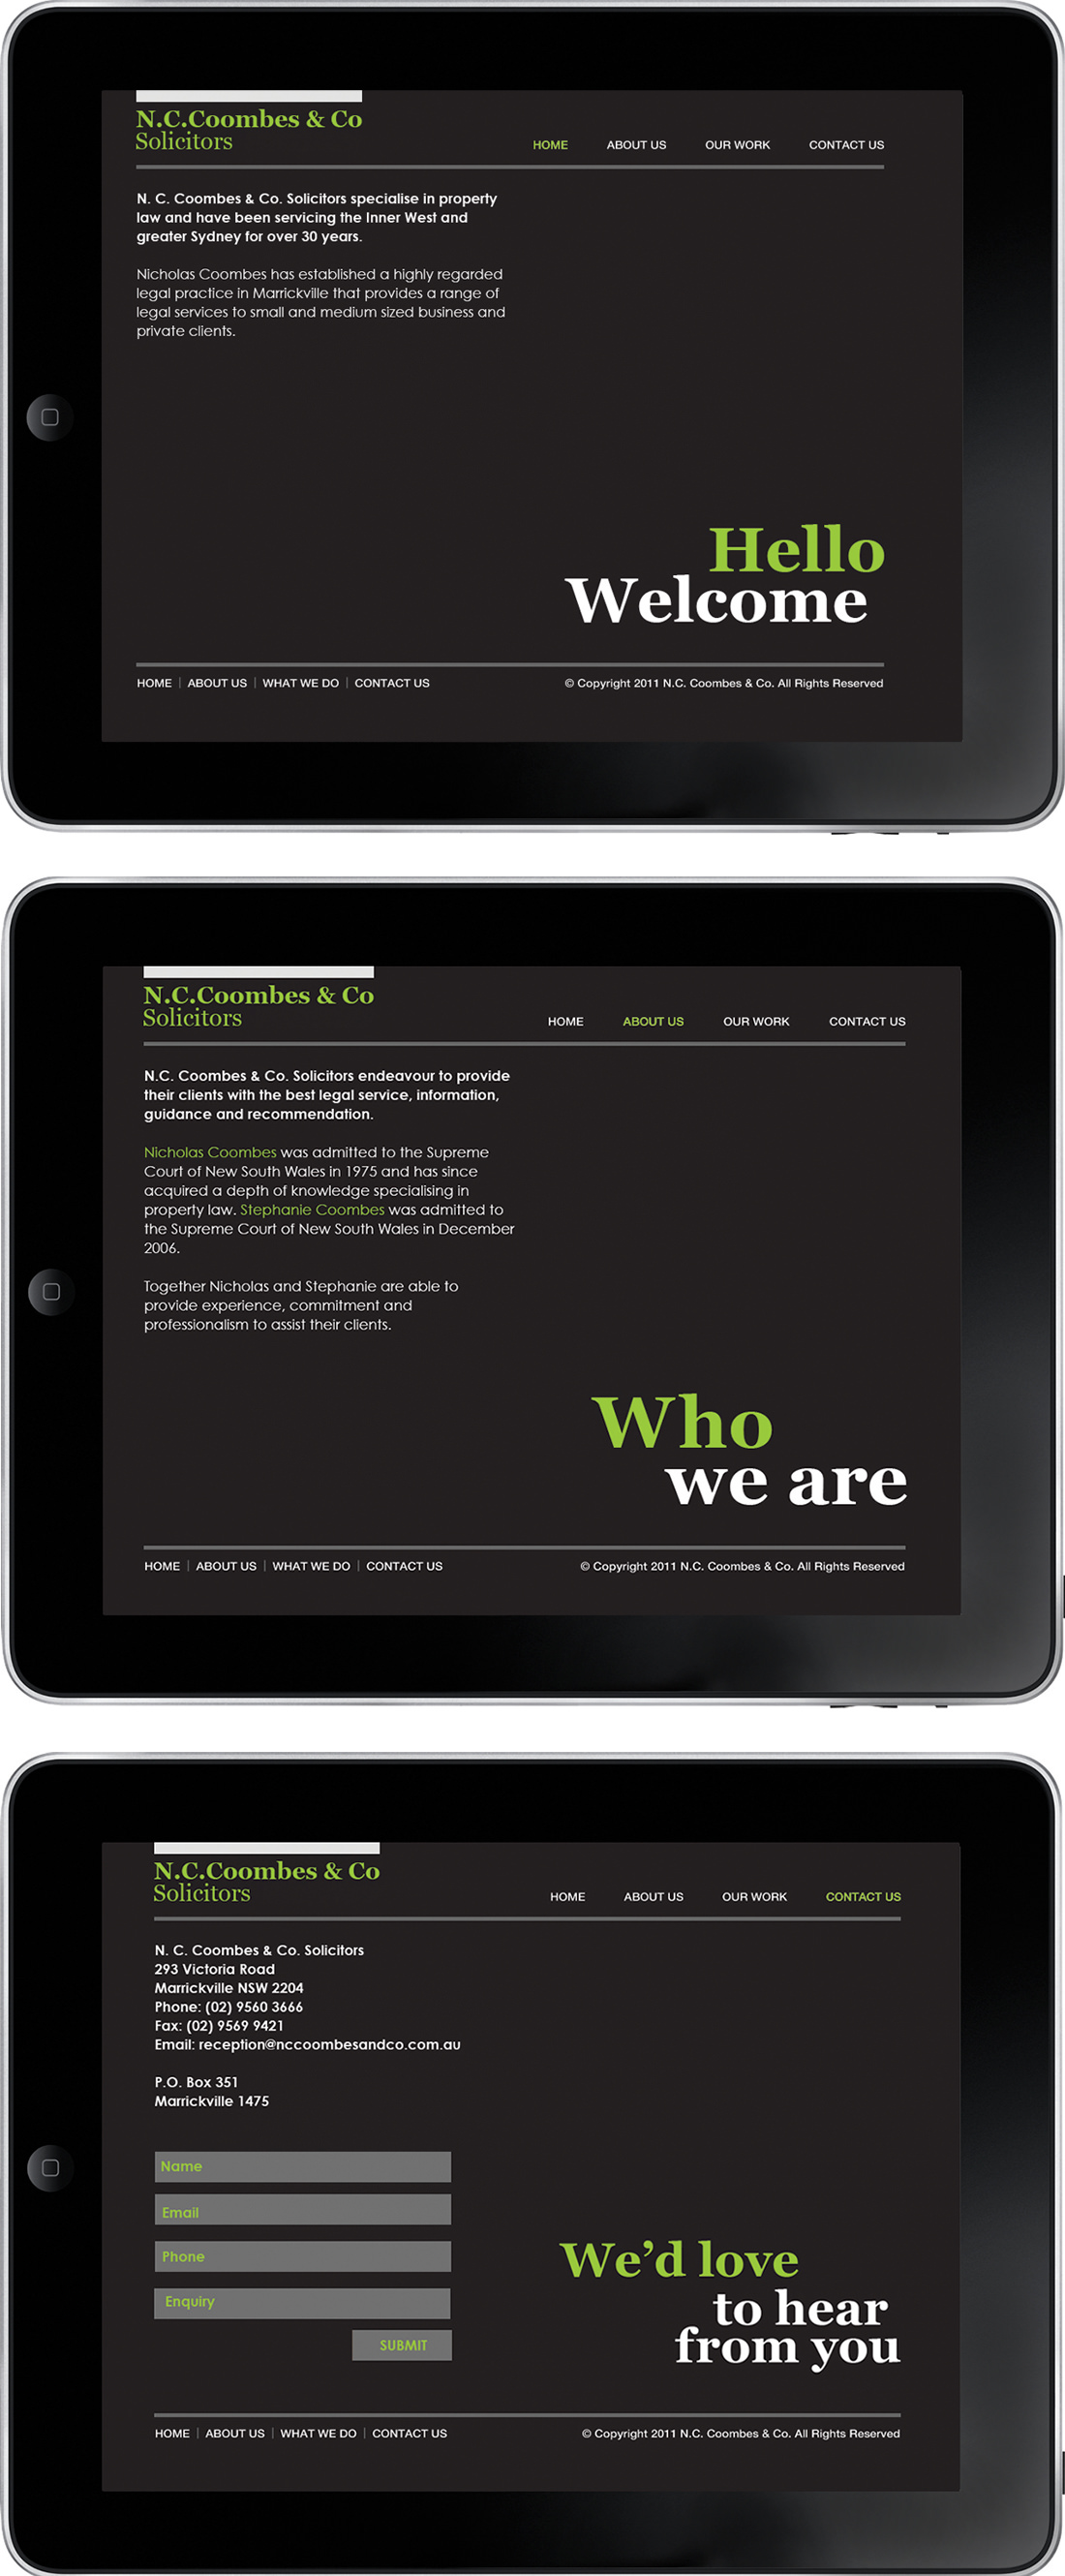 N.C.Coombes & Co Solicitors website